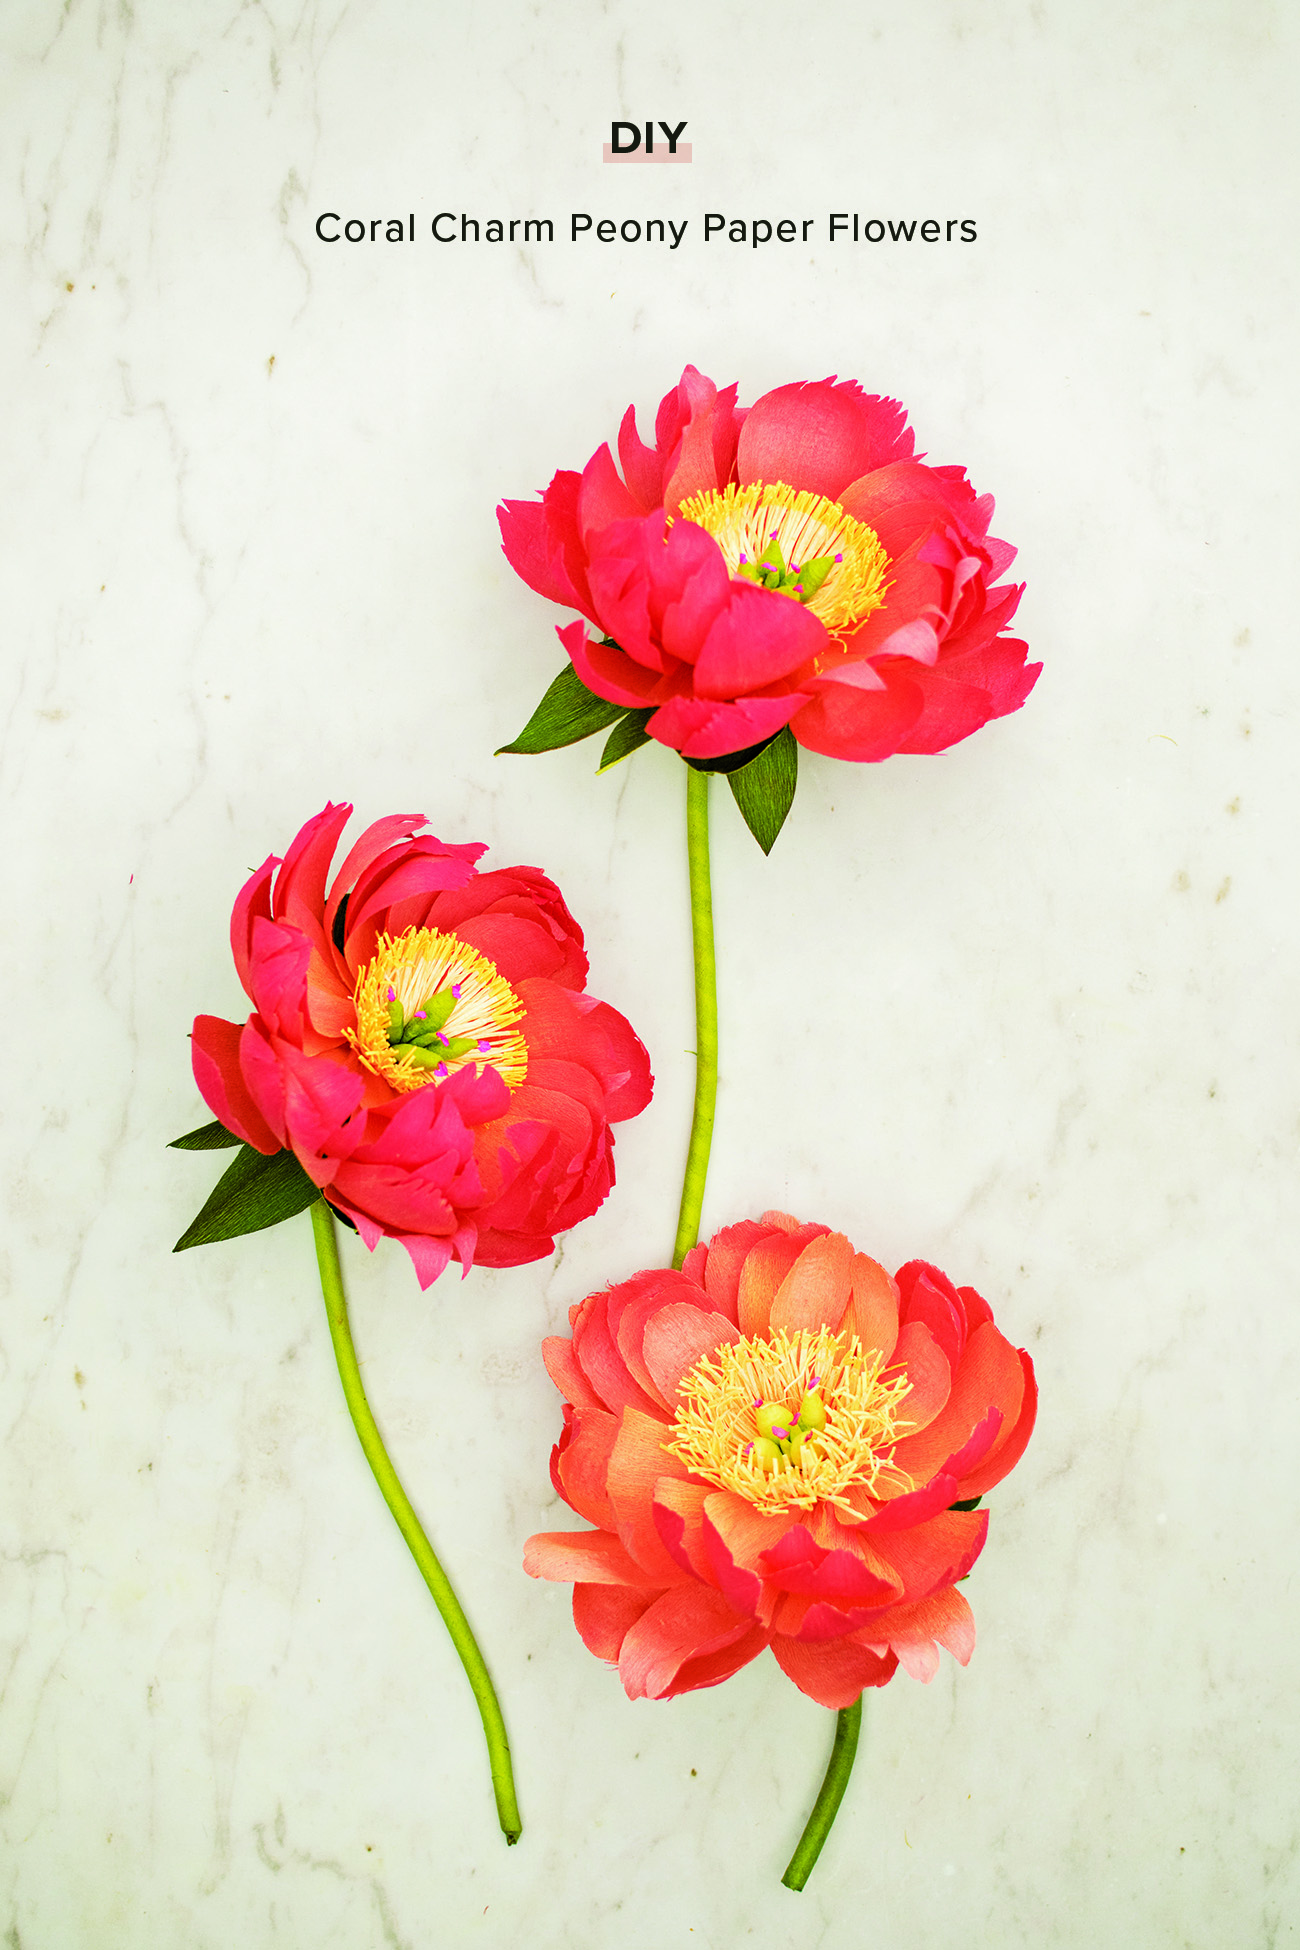 Coral Charm Peony Paper Flower DIY